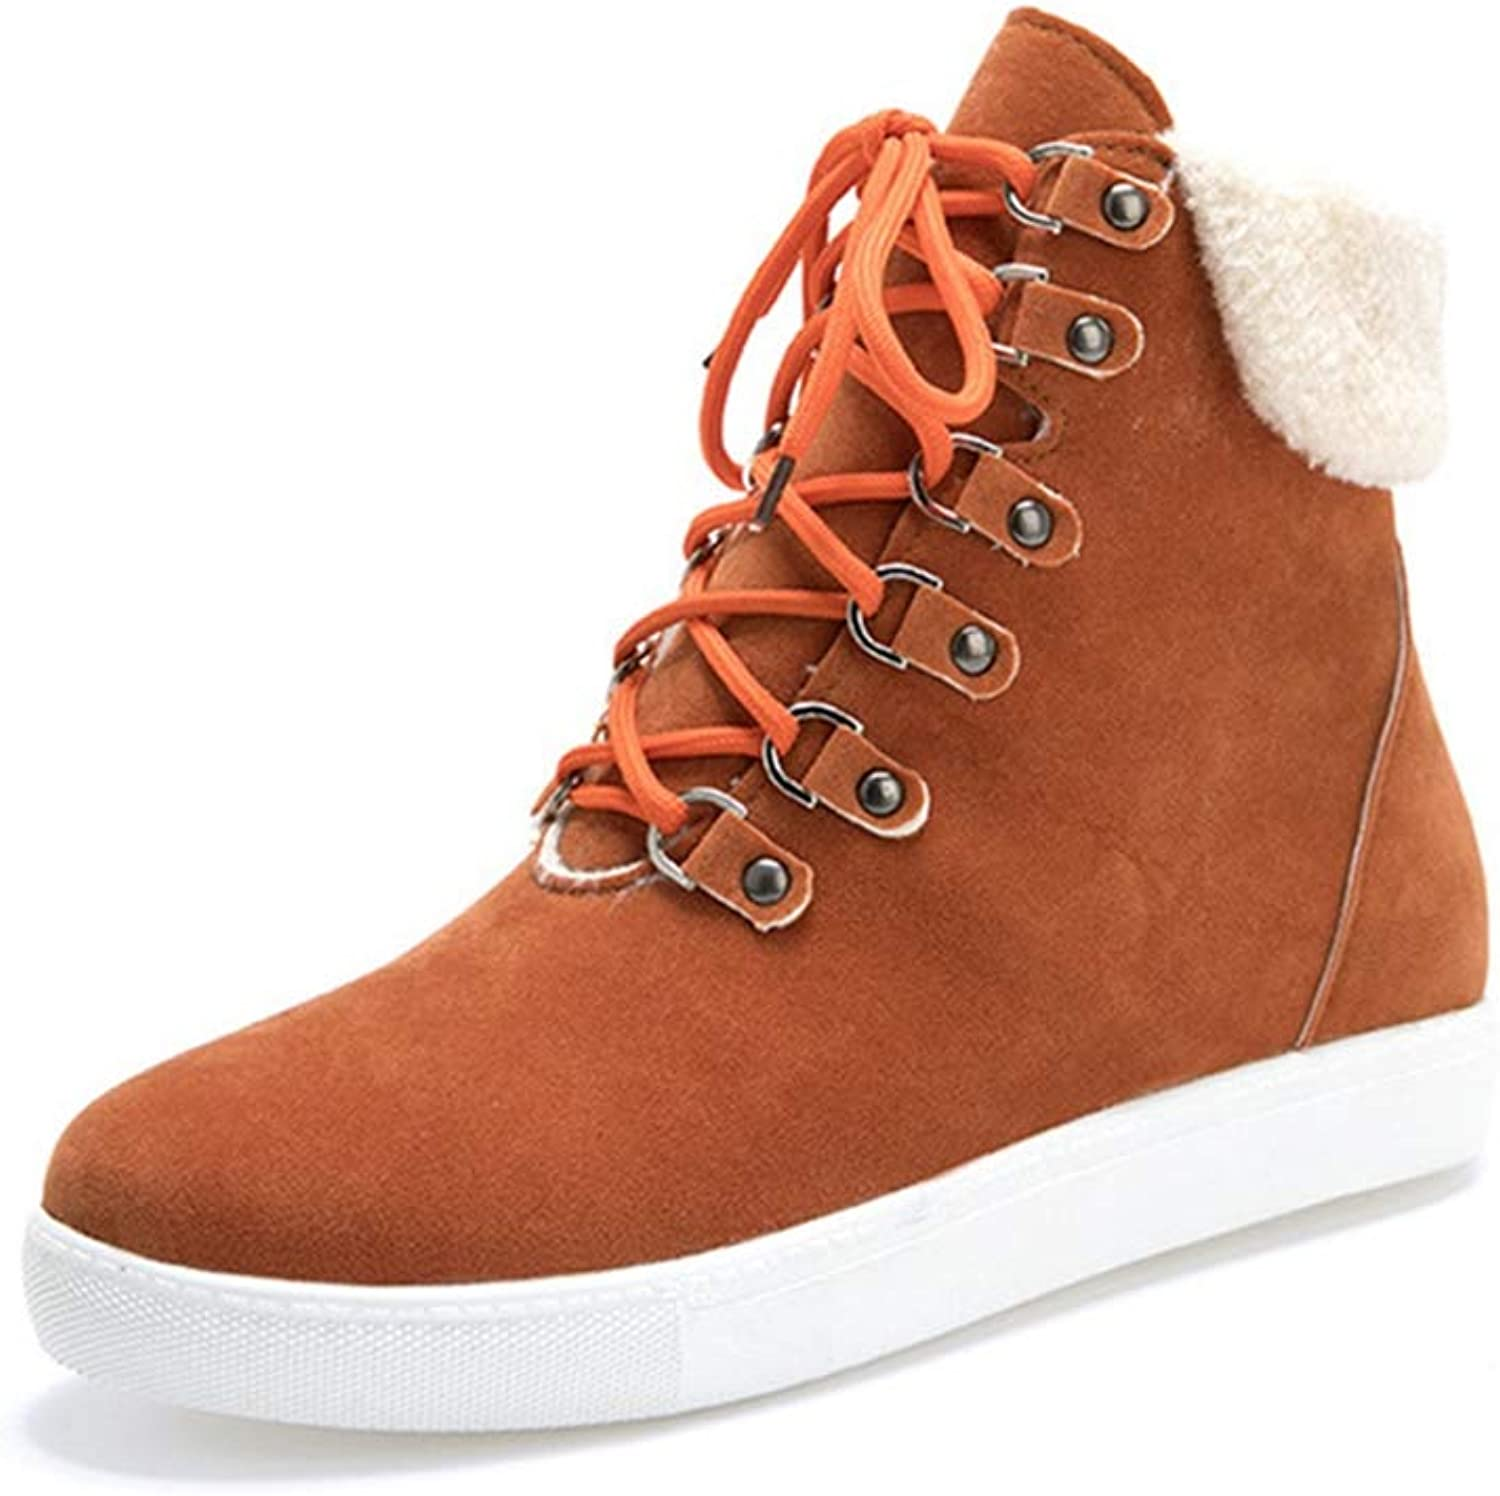 GIY Women's Lace Up Casual Ankle Boots Suede Round Toe Flat Low Heel Bootie Comfort Martin Snow Short Boot